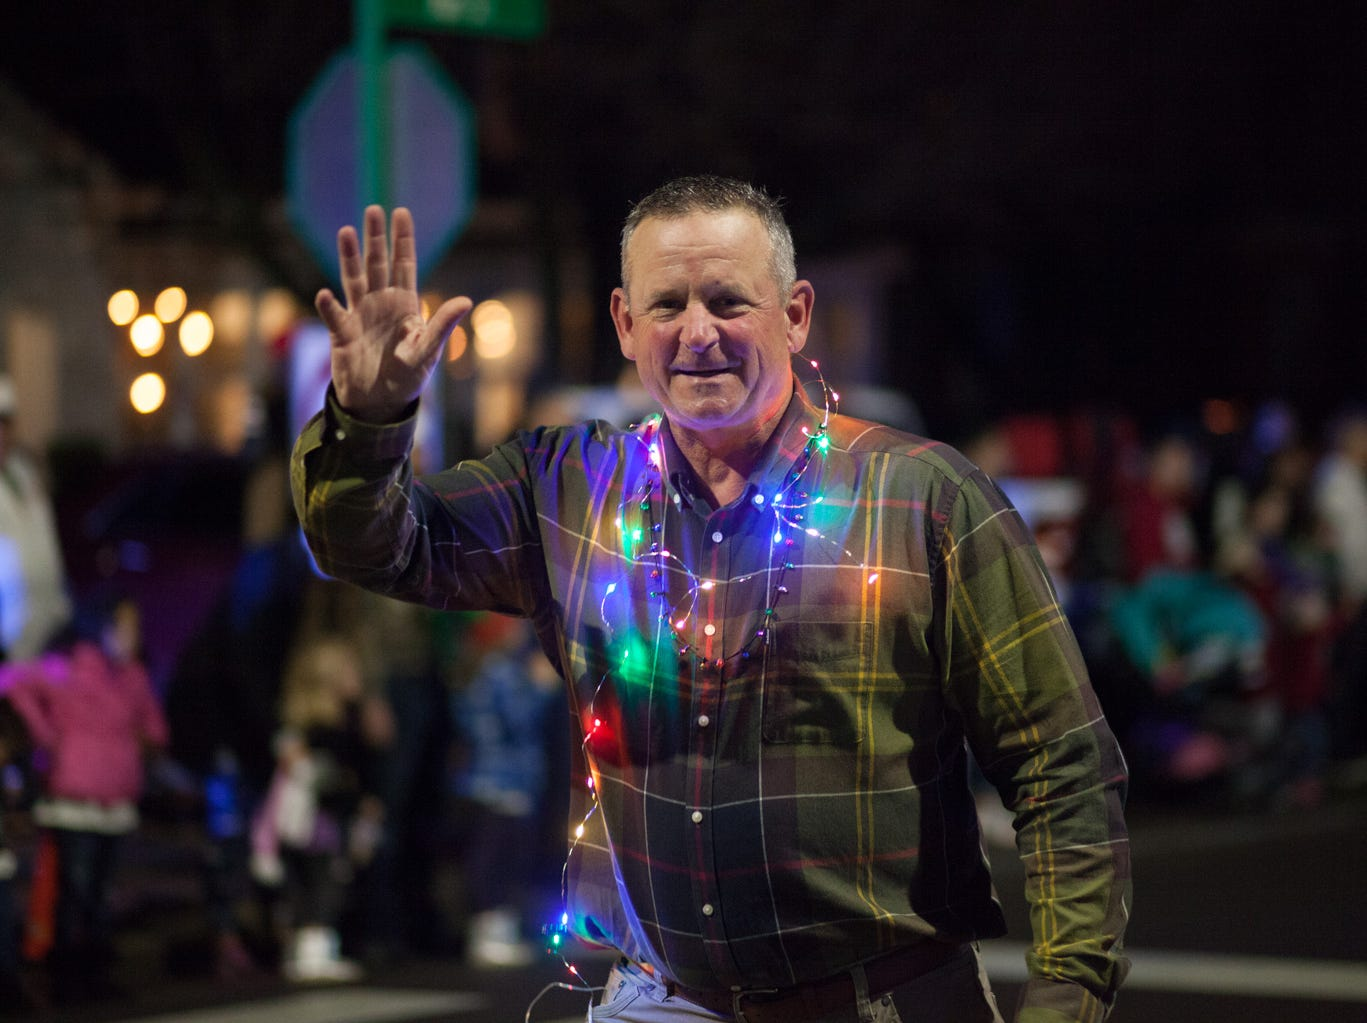 Montgomery County Mayor Jim Durrett walks in the Christmas Parade on Saturday, Dec. 1, 2018, in Clarksville, Tenn.